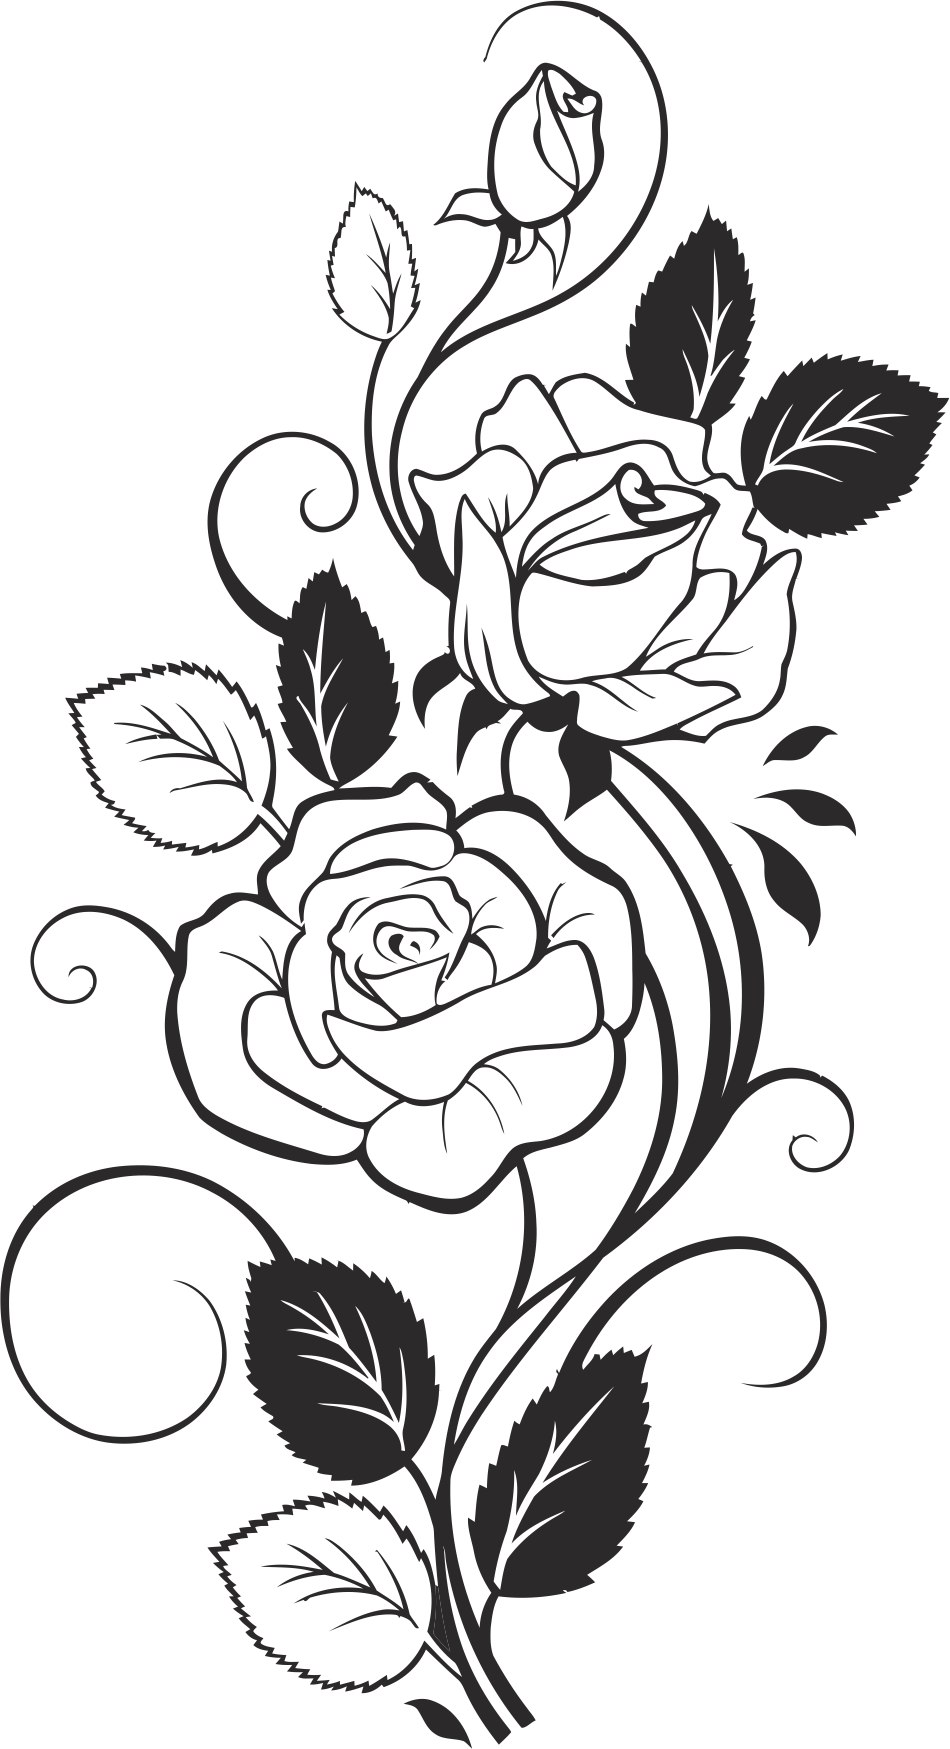 Black And White Rose Free CDR Vectors Art